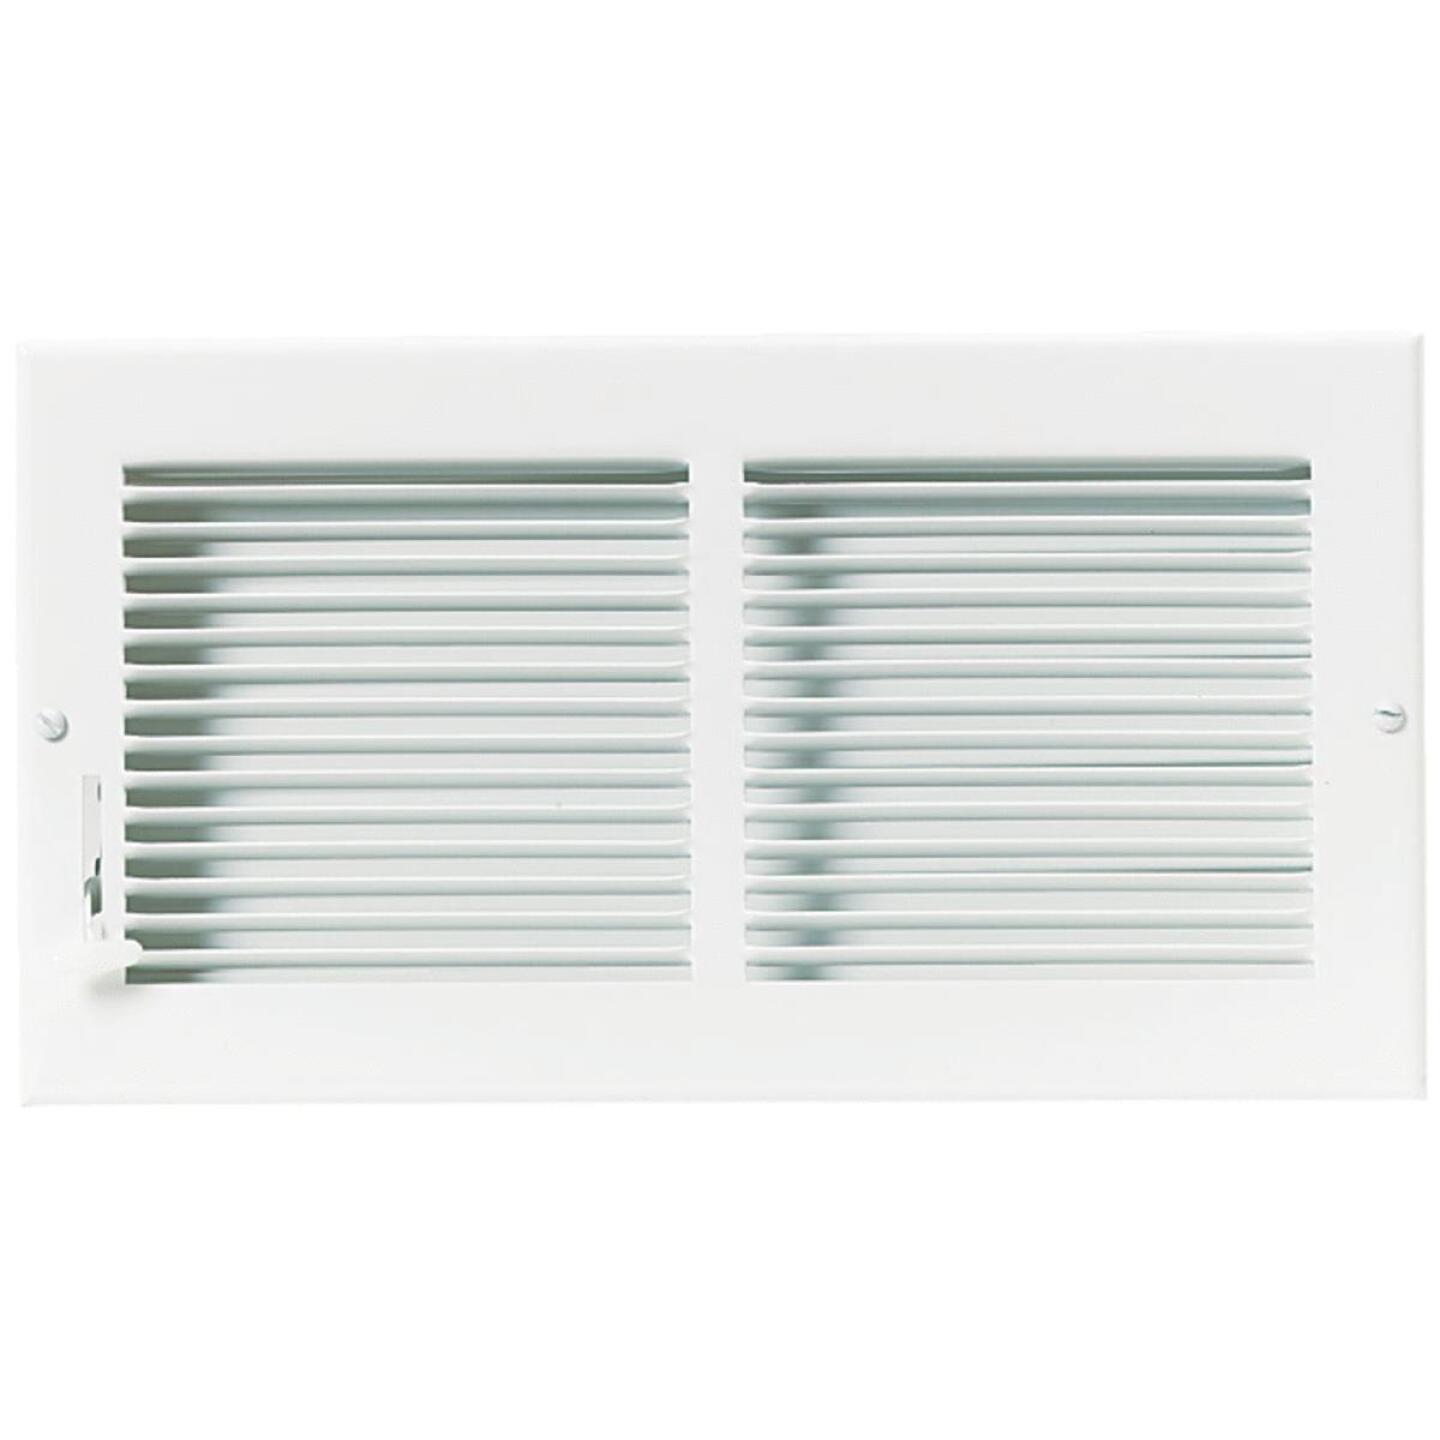 Accord 12 In. x 6 In. White Wall Register Image 2